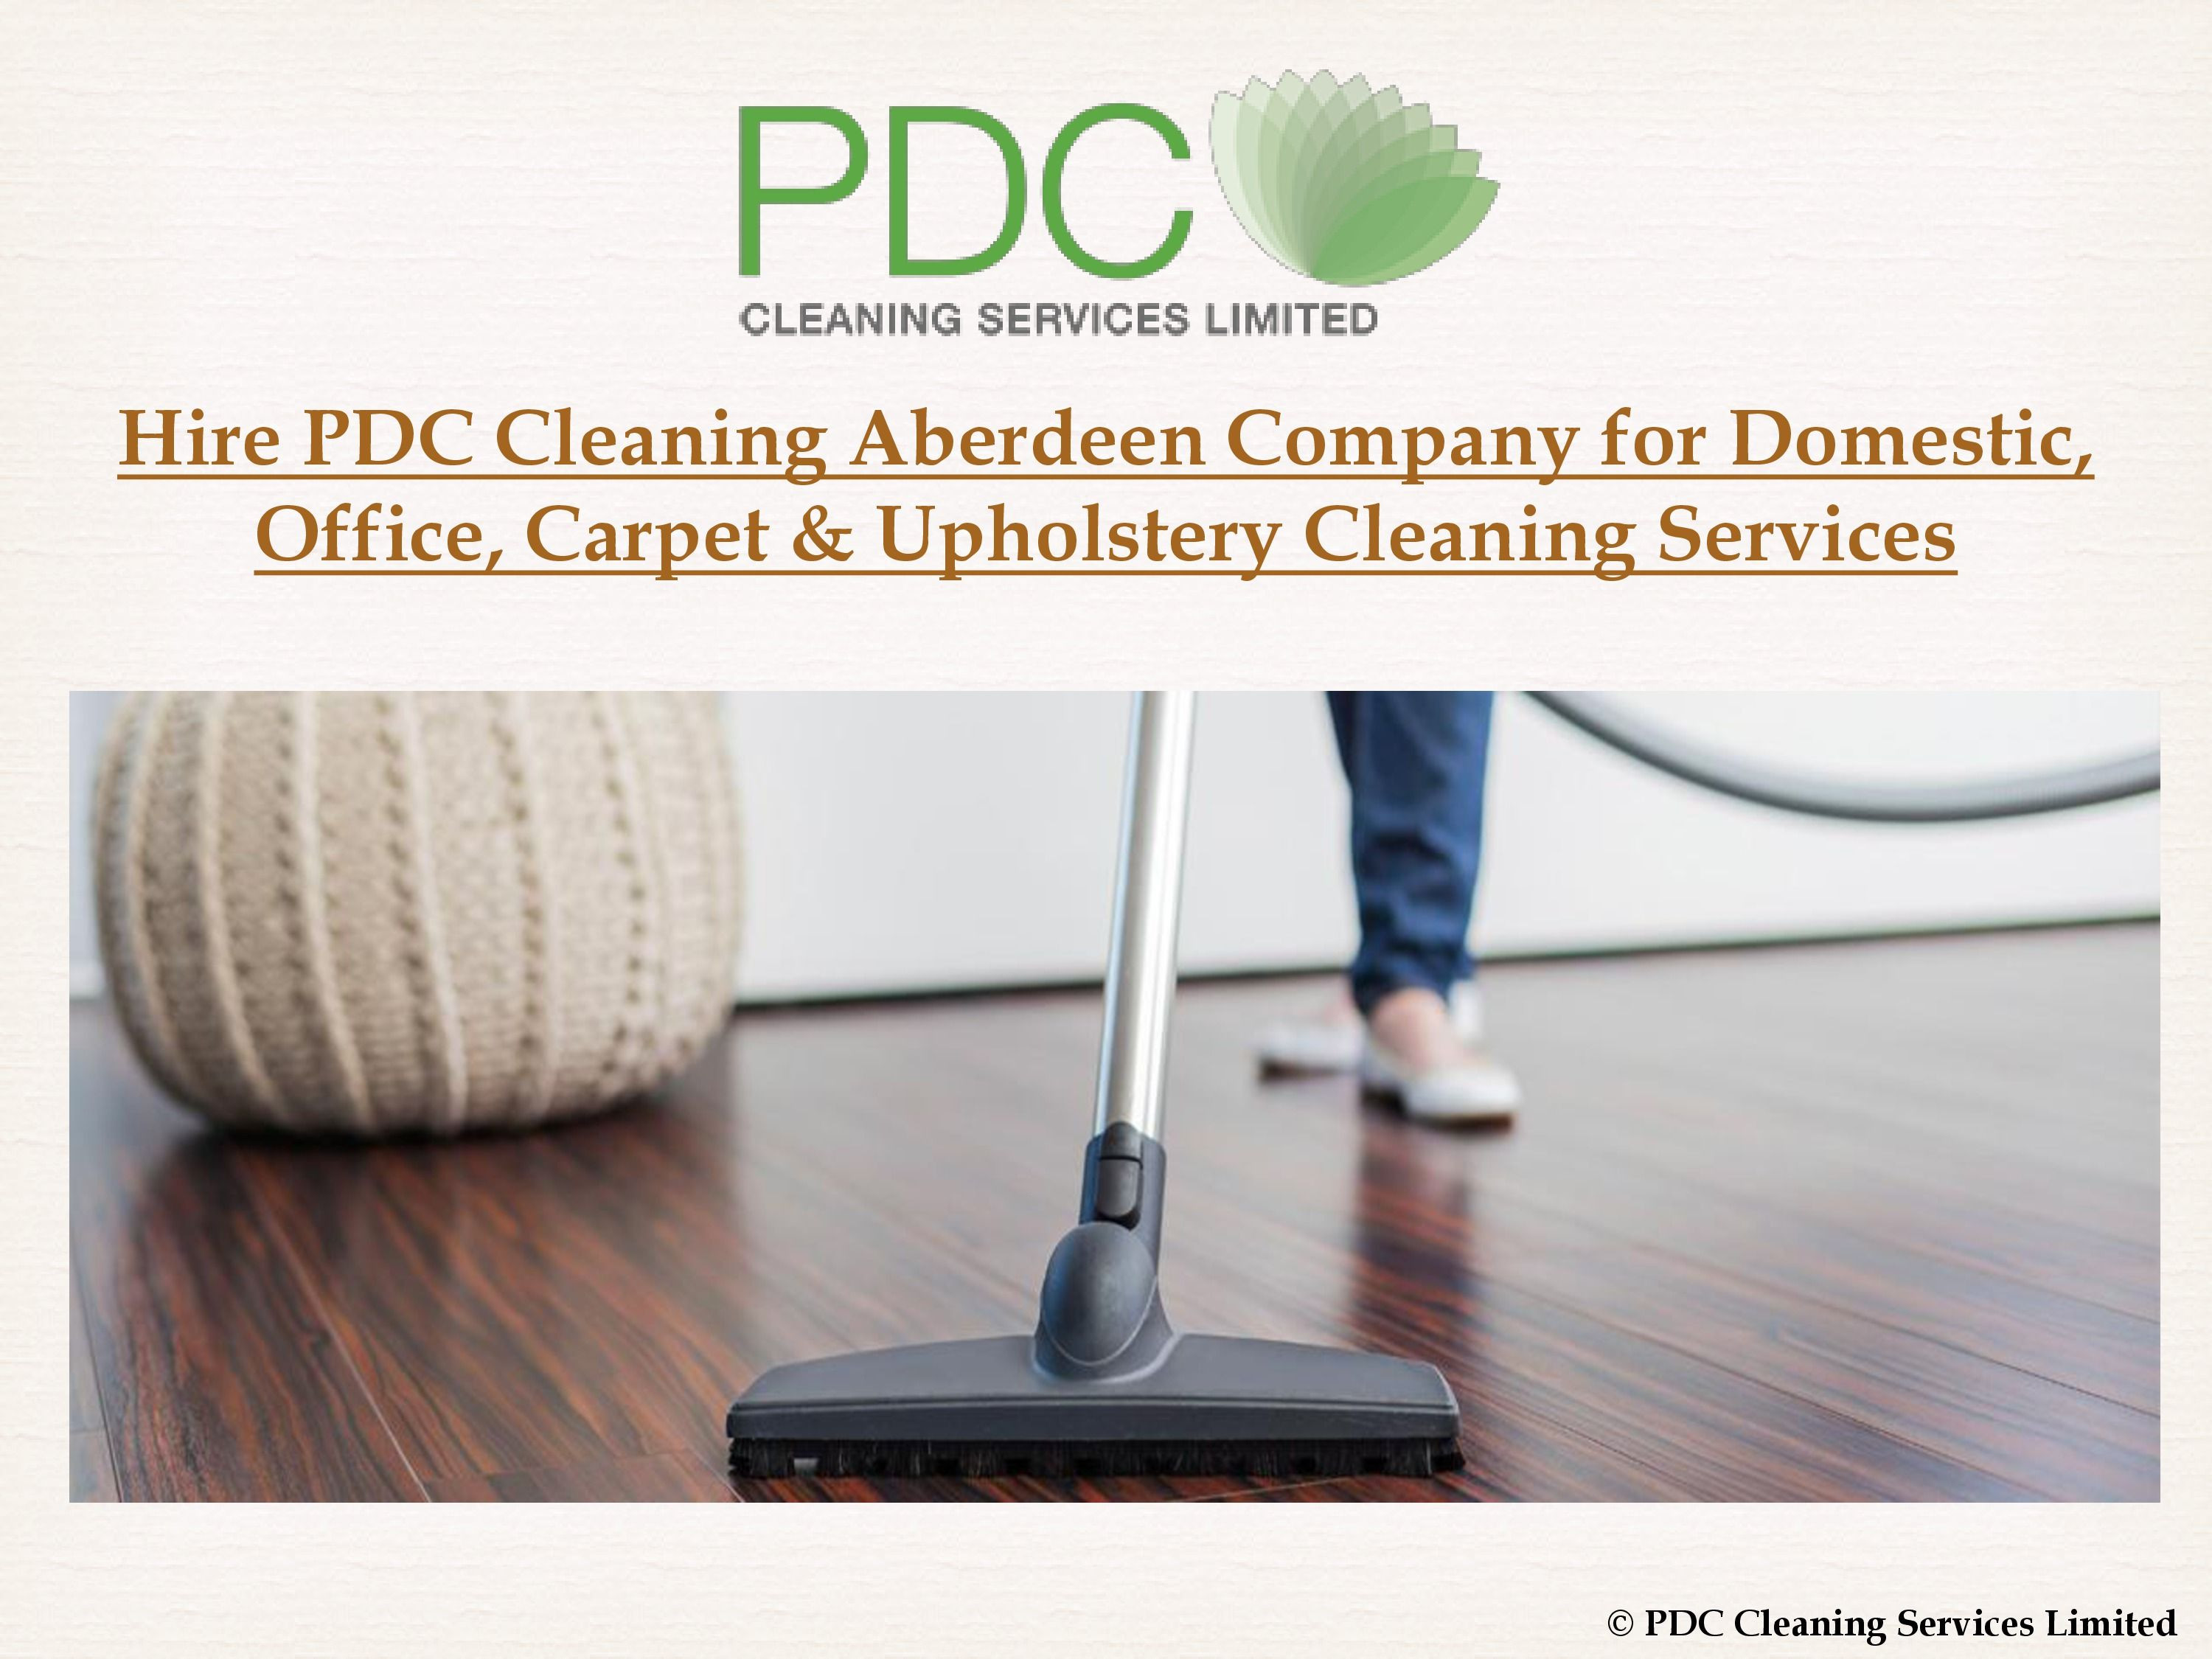 Hardwood Floor Repair Companies Of Best Professional Home Cleaning Services Offers Carpet Cleaning for Best Professional Home Cleaning Services Offers Carpet Cleaning Upholstery Cleaning Tiling Flooring